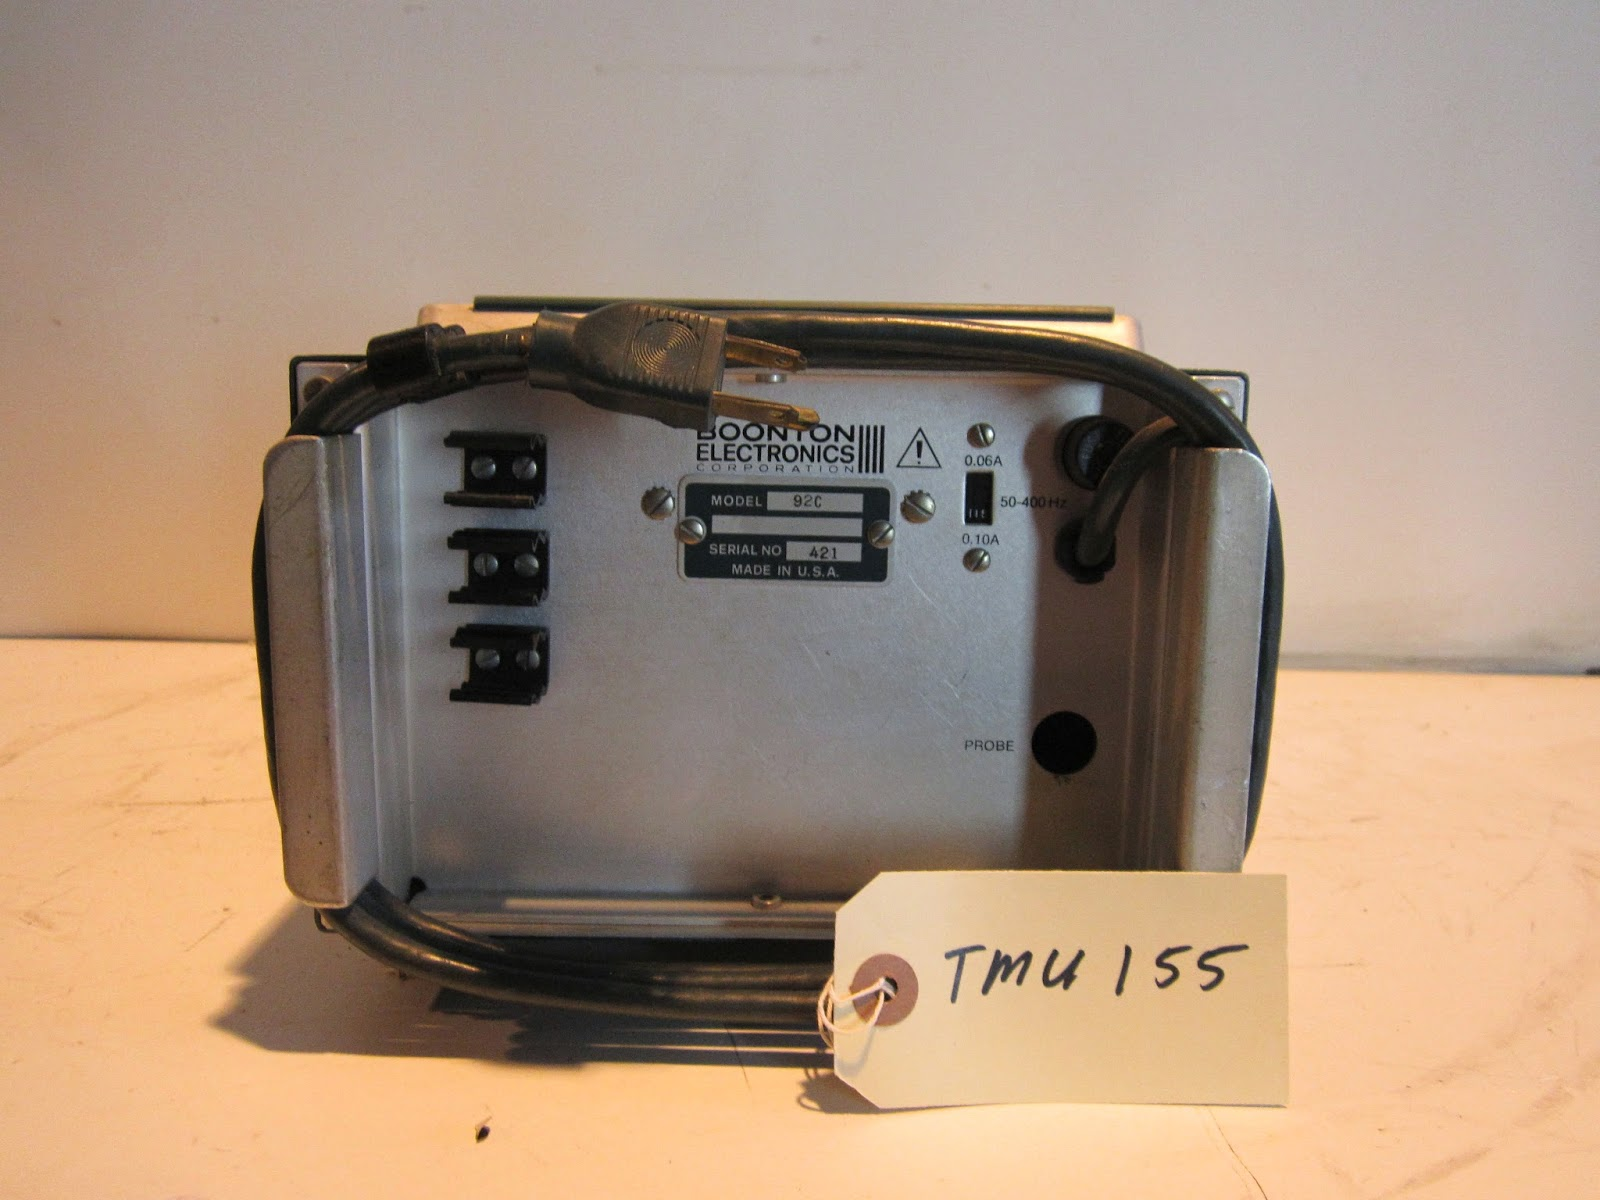 Hp 92c 91 8b And 12f Rf Millivoltmeter Probe W Adapter Call Or Email For Repair Calibration Cell 909 263 7364 Max